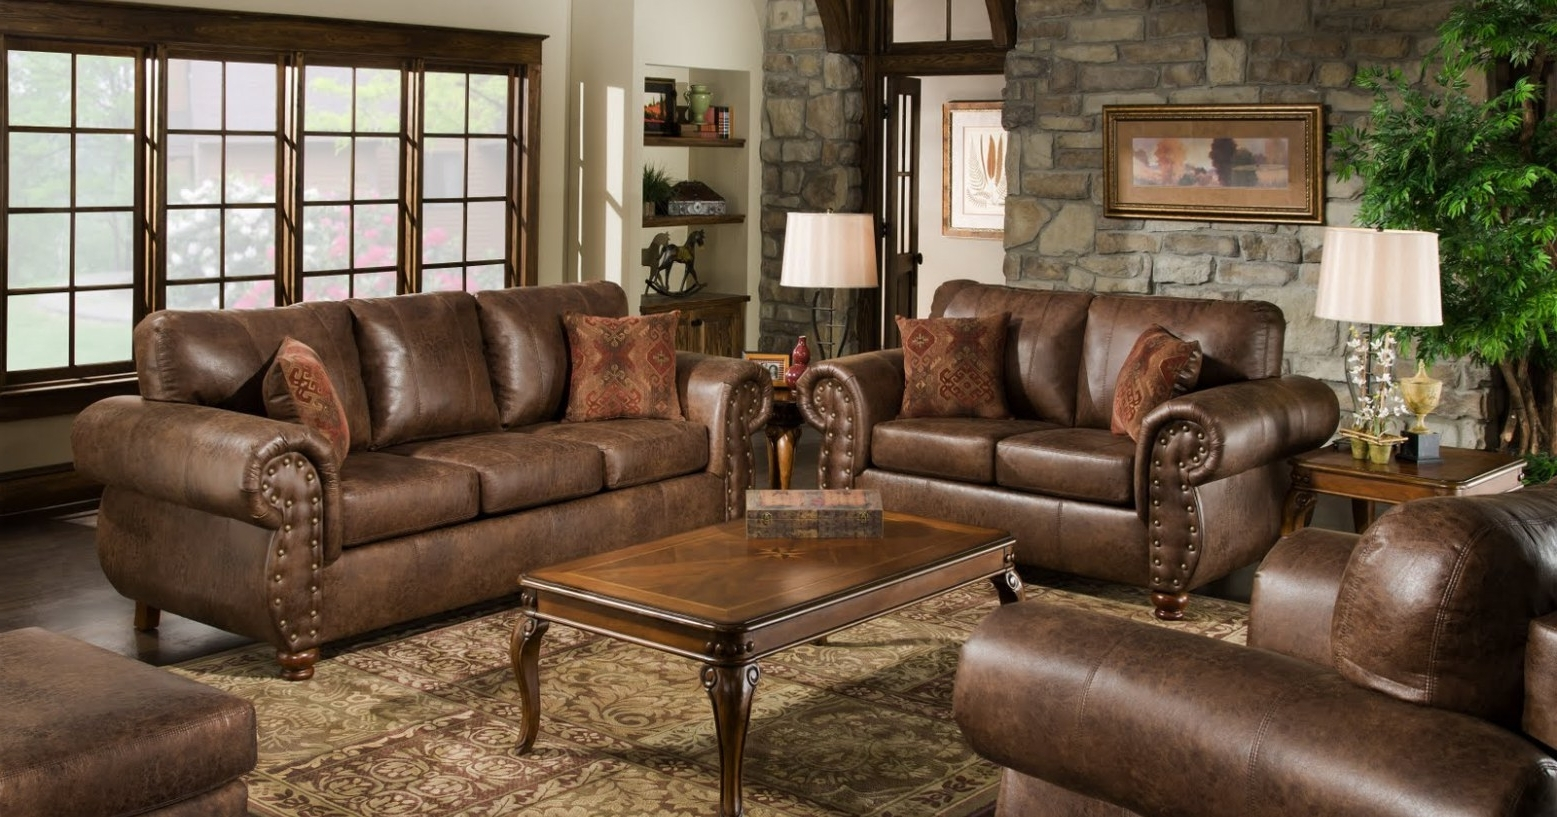 Country Cottage Sofas And Chairs Regarding Most Recently Released Sofa Bxp Country  Cottage Sofas And Chairs